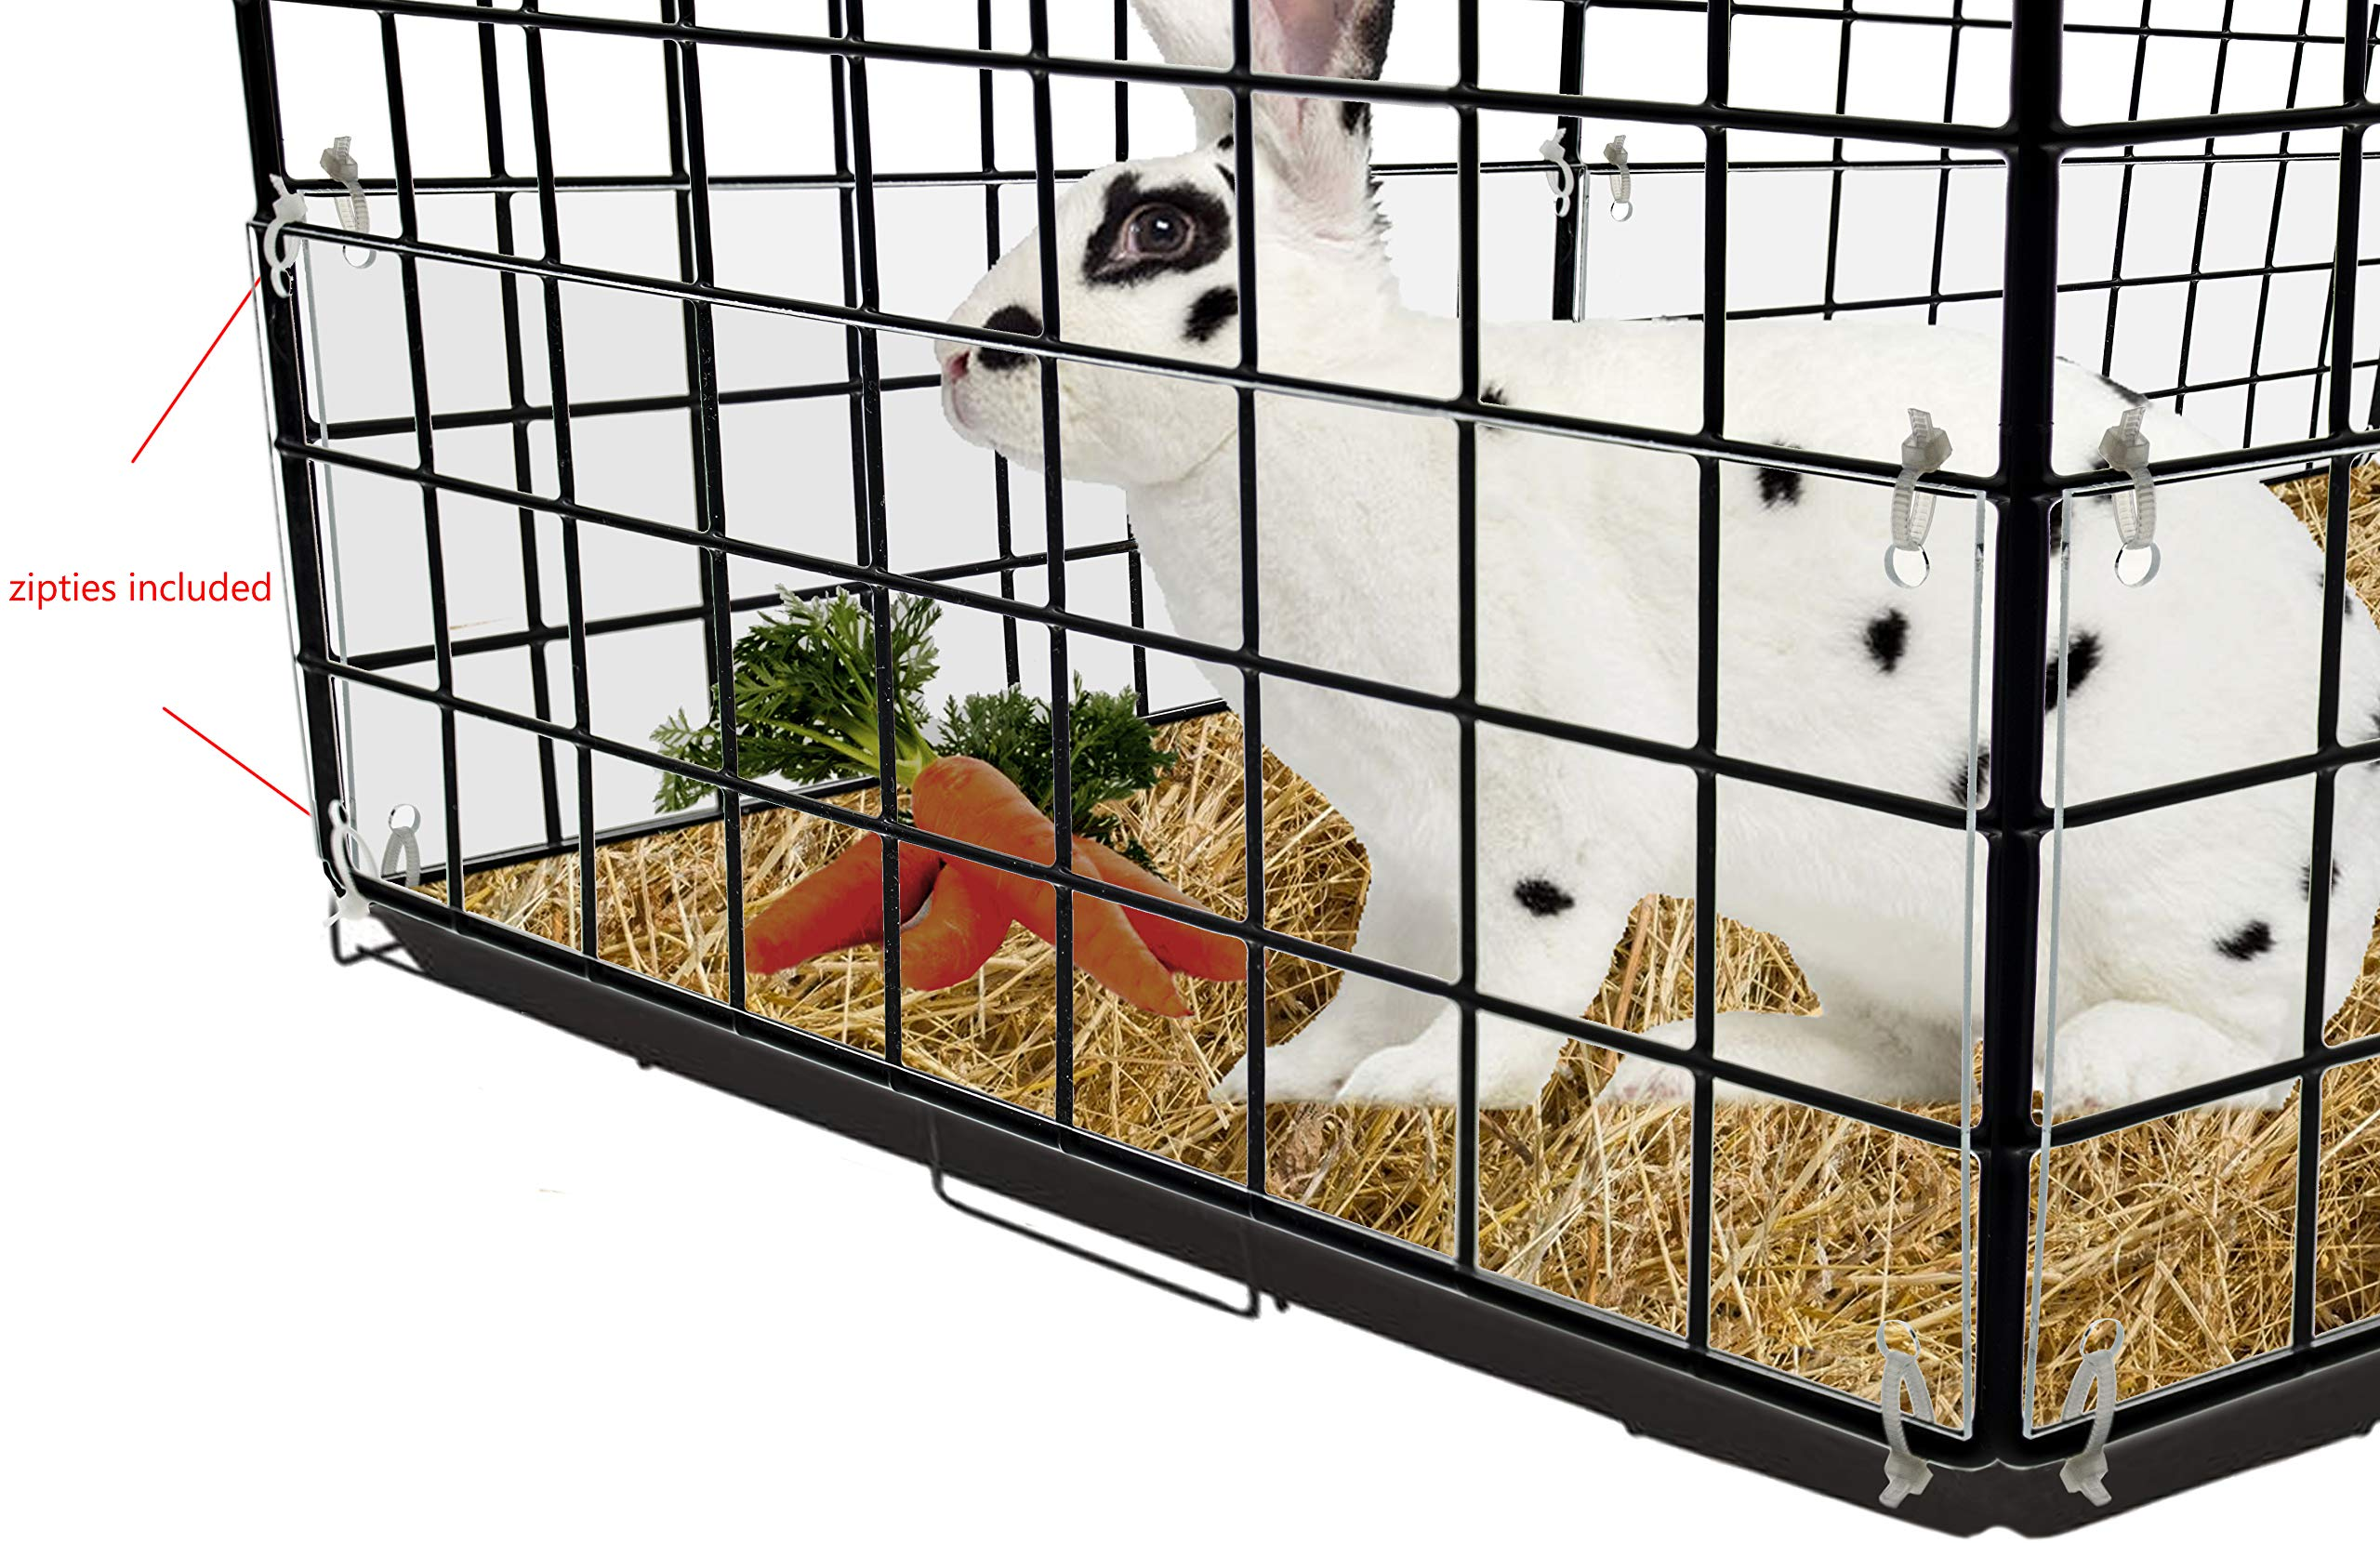 Marketing Holders Cage Edge Liner pet Rabbit & Guinea Pig cage Urine Guard Side Lining 2 Packs of 8 by Marketing Holders (Image #1)